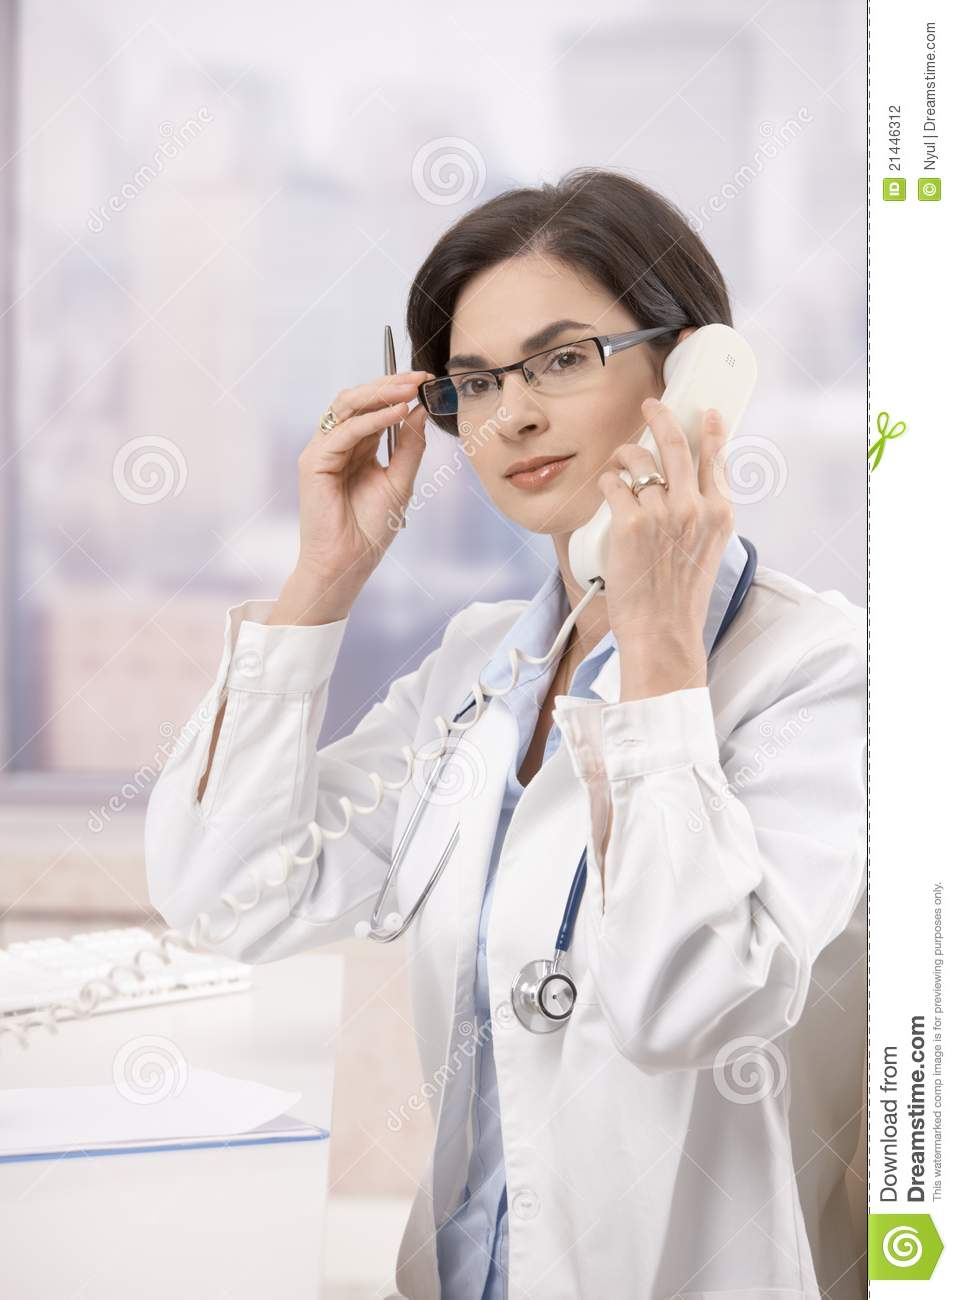 dating a doctor on call